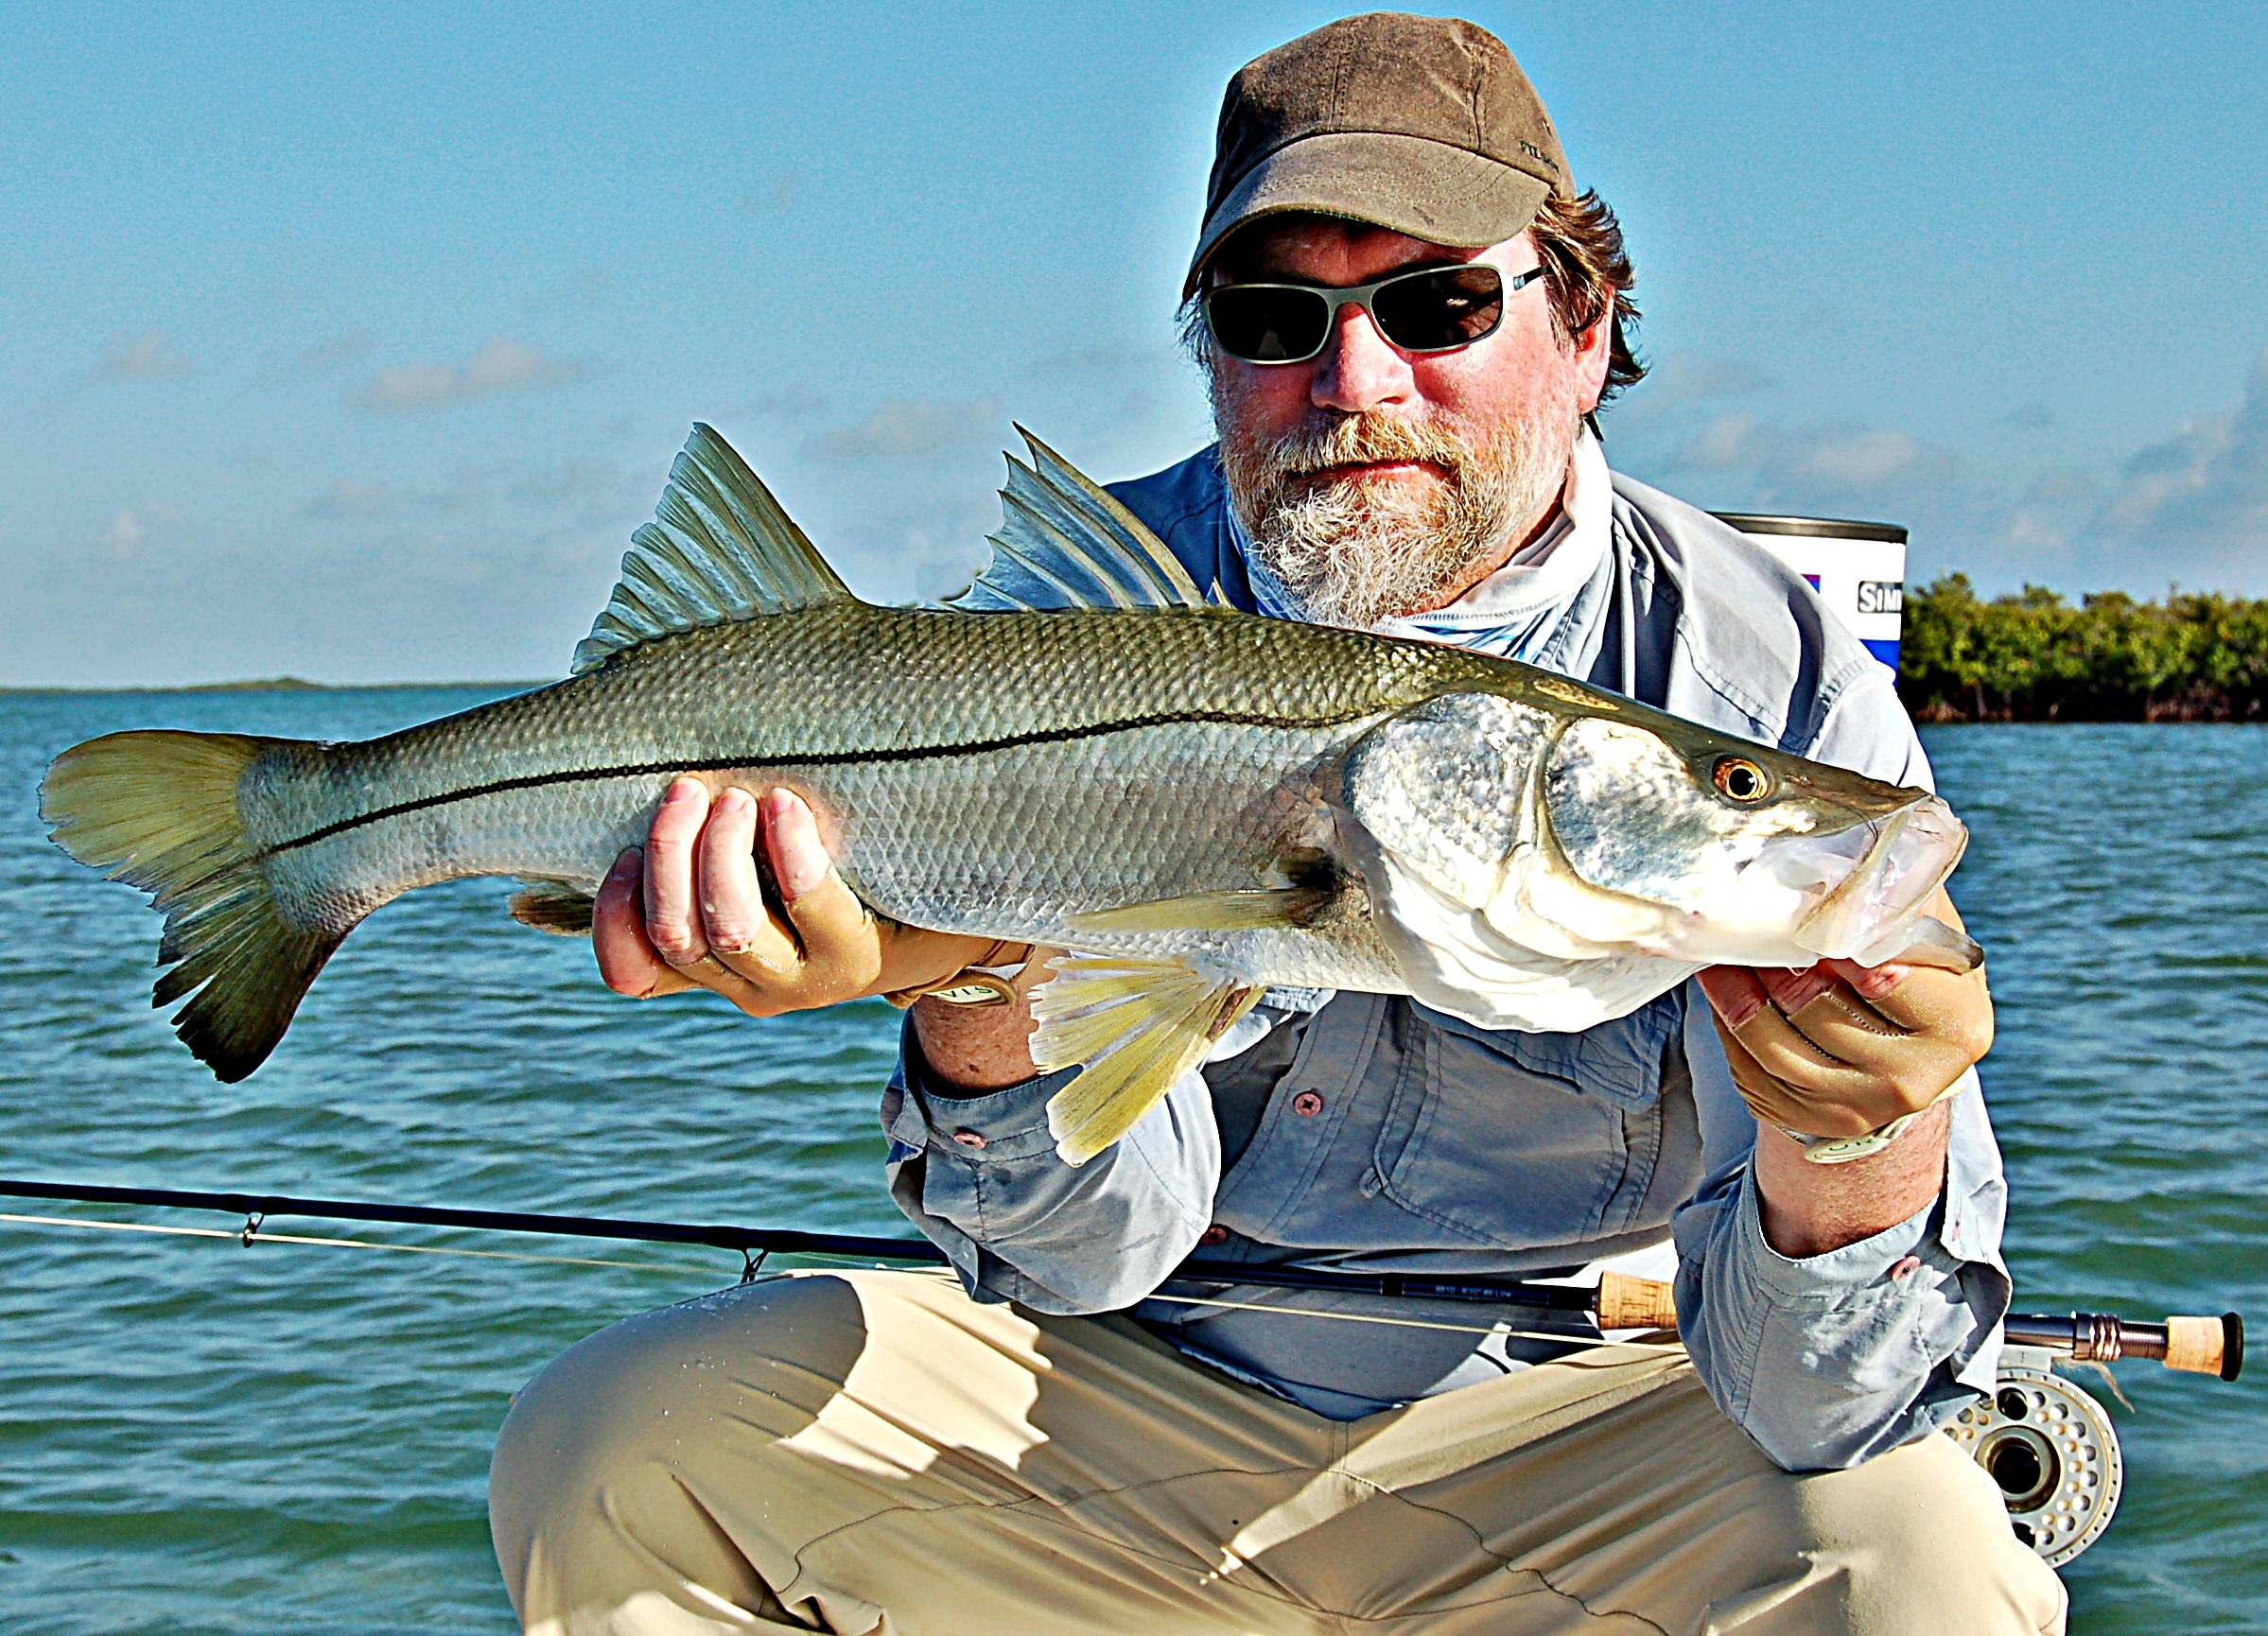 Fish Found in Florida Florida Keys Fly Fishing Guide